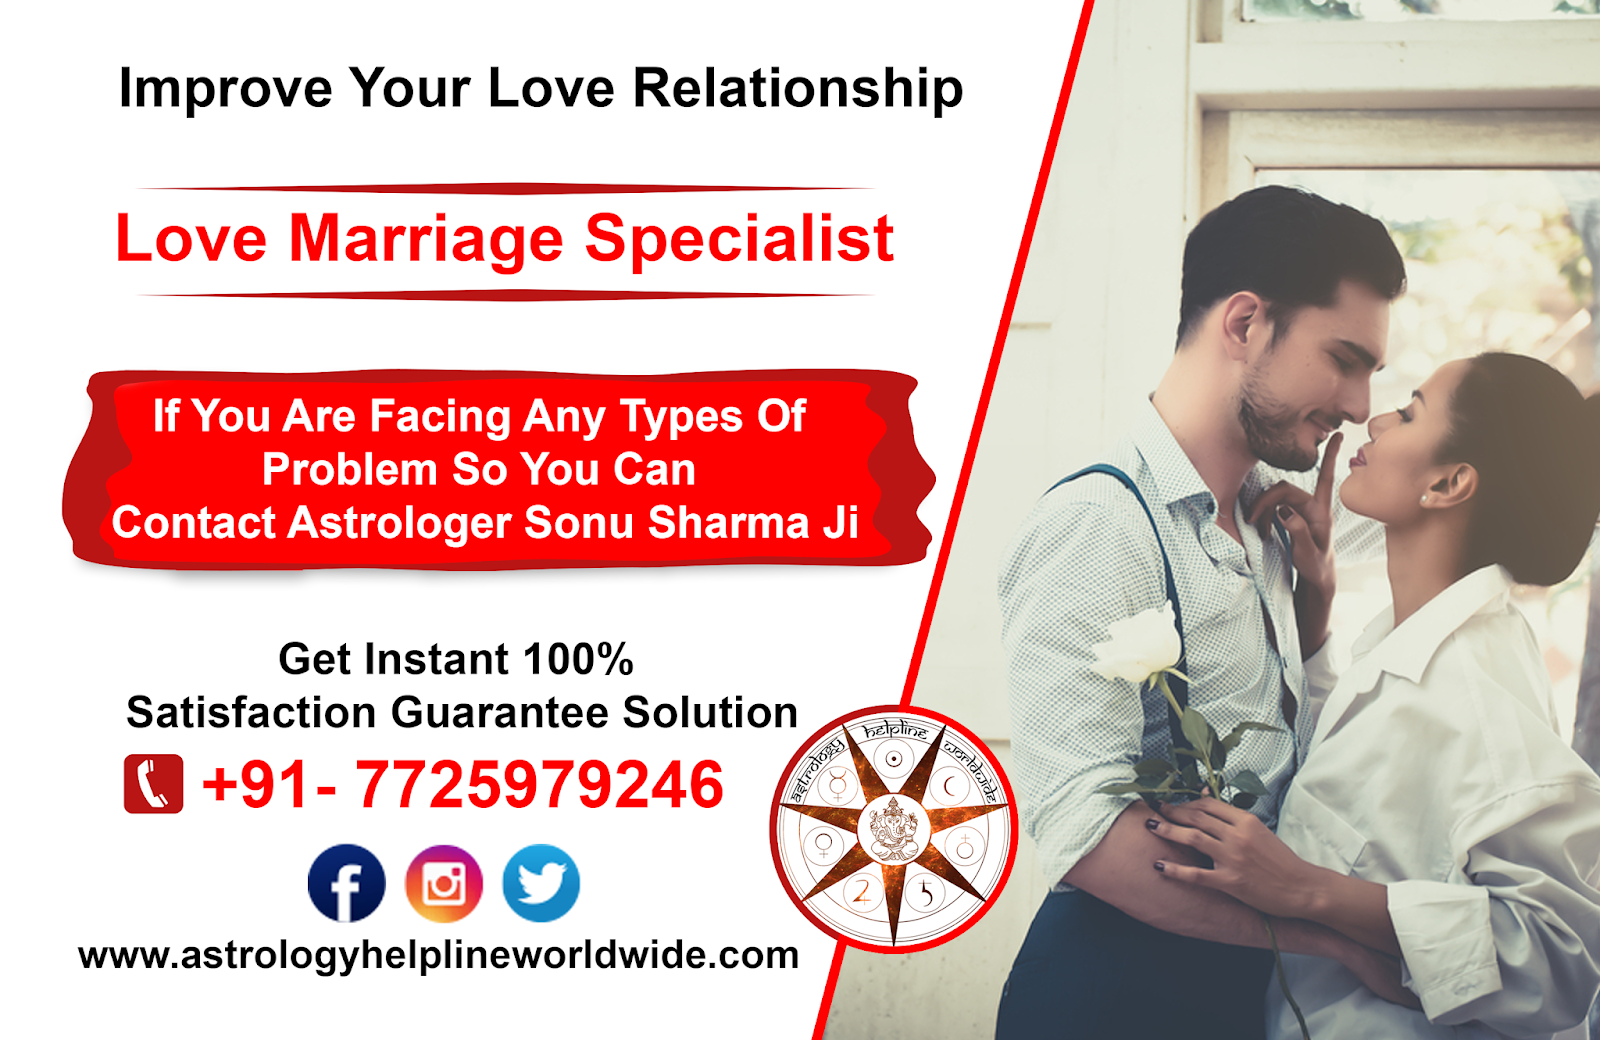 Love Marriage Specialist in Delhi | +91-7725979246 Call Now